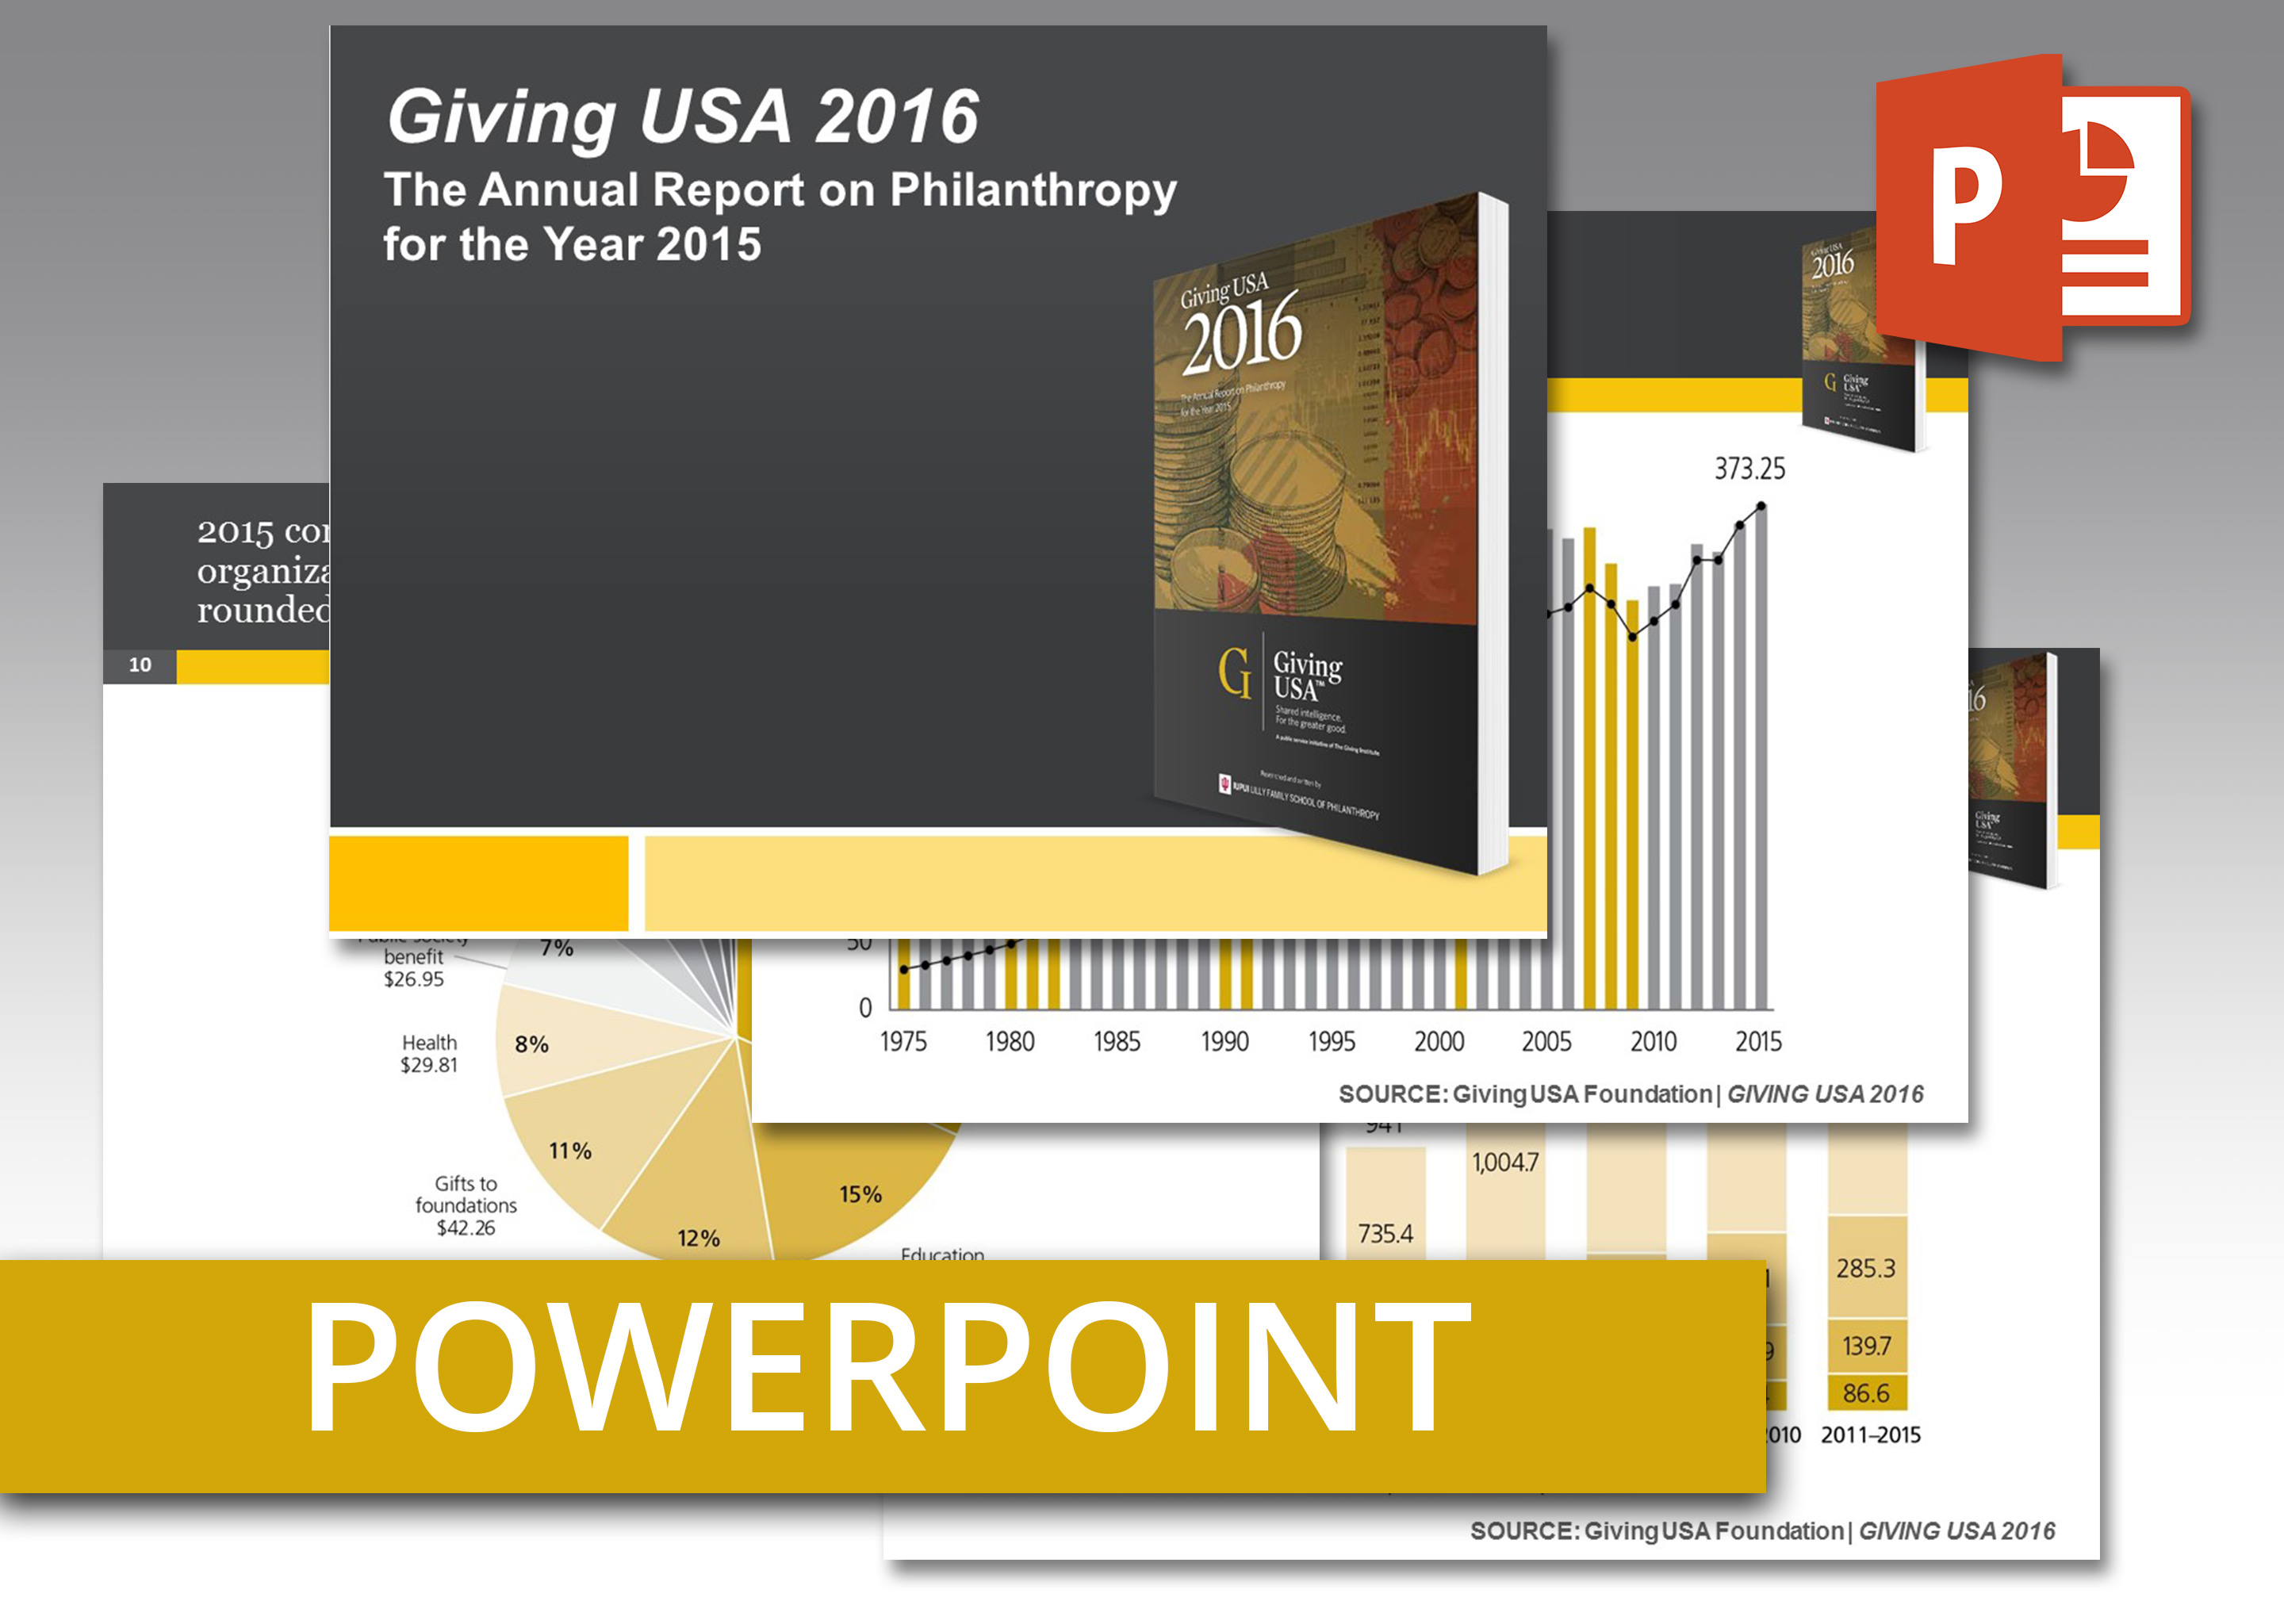 Usdgus  Prepossessing Giving Usa  Powerpoint An Easytouse Presentation Of Report  With Licious Giving Usa  Powerpoint An Easytouse Presentation Of Report Findings Including Talking Points With Enchanting Powerpoint Presentation On Sustainable Development Also Template Powerpoint Presentation Free Download In Addition Powerpoint Presentation On Solar Energy And Moving Clipart For Powerpoint Presentation As Well As Romare Bearden Powerpoint Additionally Powerpoint Converter Pptx To Ppt From Givingusaorg With Usdgus  Licious Giving Usa  Powerpoint An Easytouse Presentation Of Report  With Enchanting Giving Usa  Powerpoint An Easytouse Presentation Of Report Findings Including Talking Points And Prepossessing Powerpoint Presentation On Sustainable Development Also Template Powerpoint Presentation Free Download In Addition Powerpoint Presentation On Solar Energy From Givingusaorg